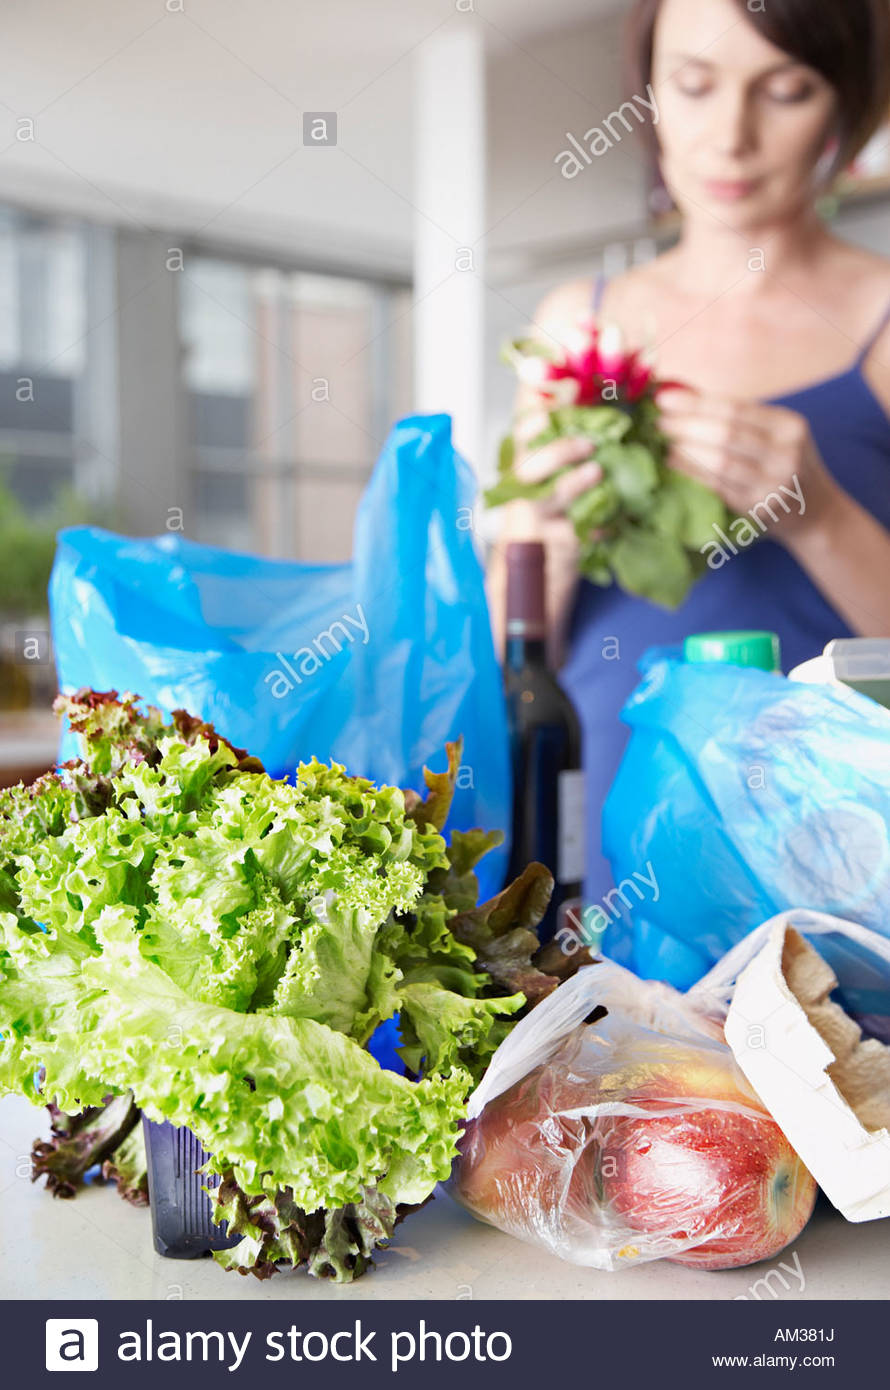 Woman with groceries and flowers in kitchen - Stock Image